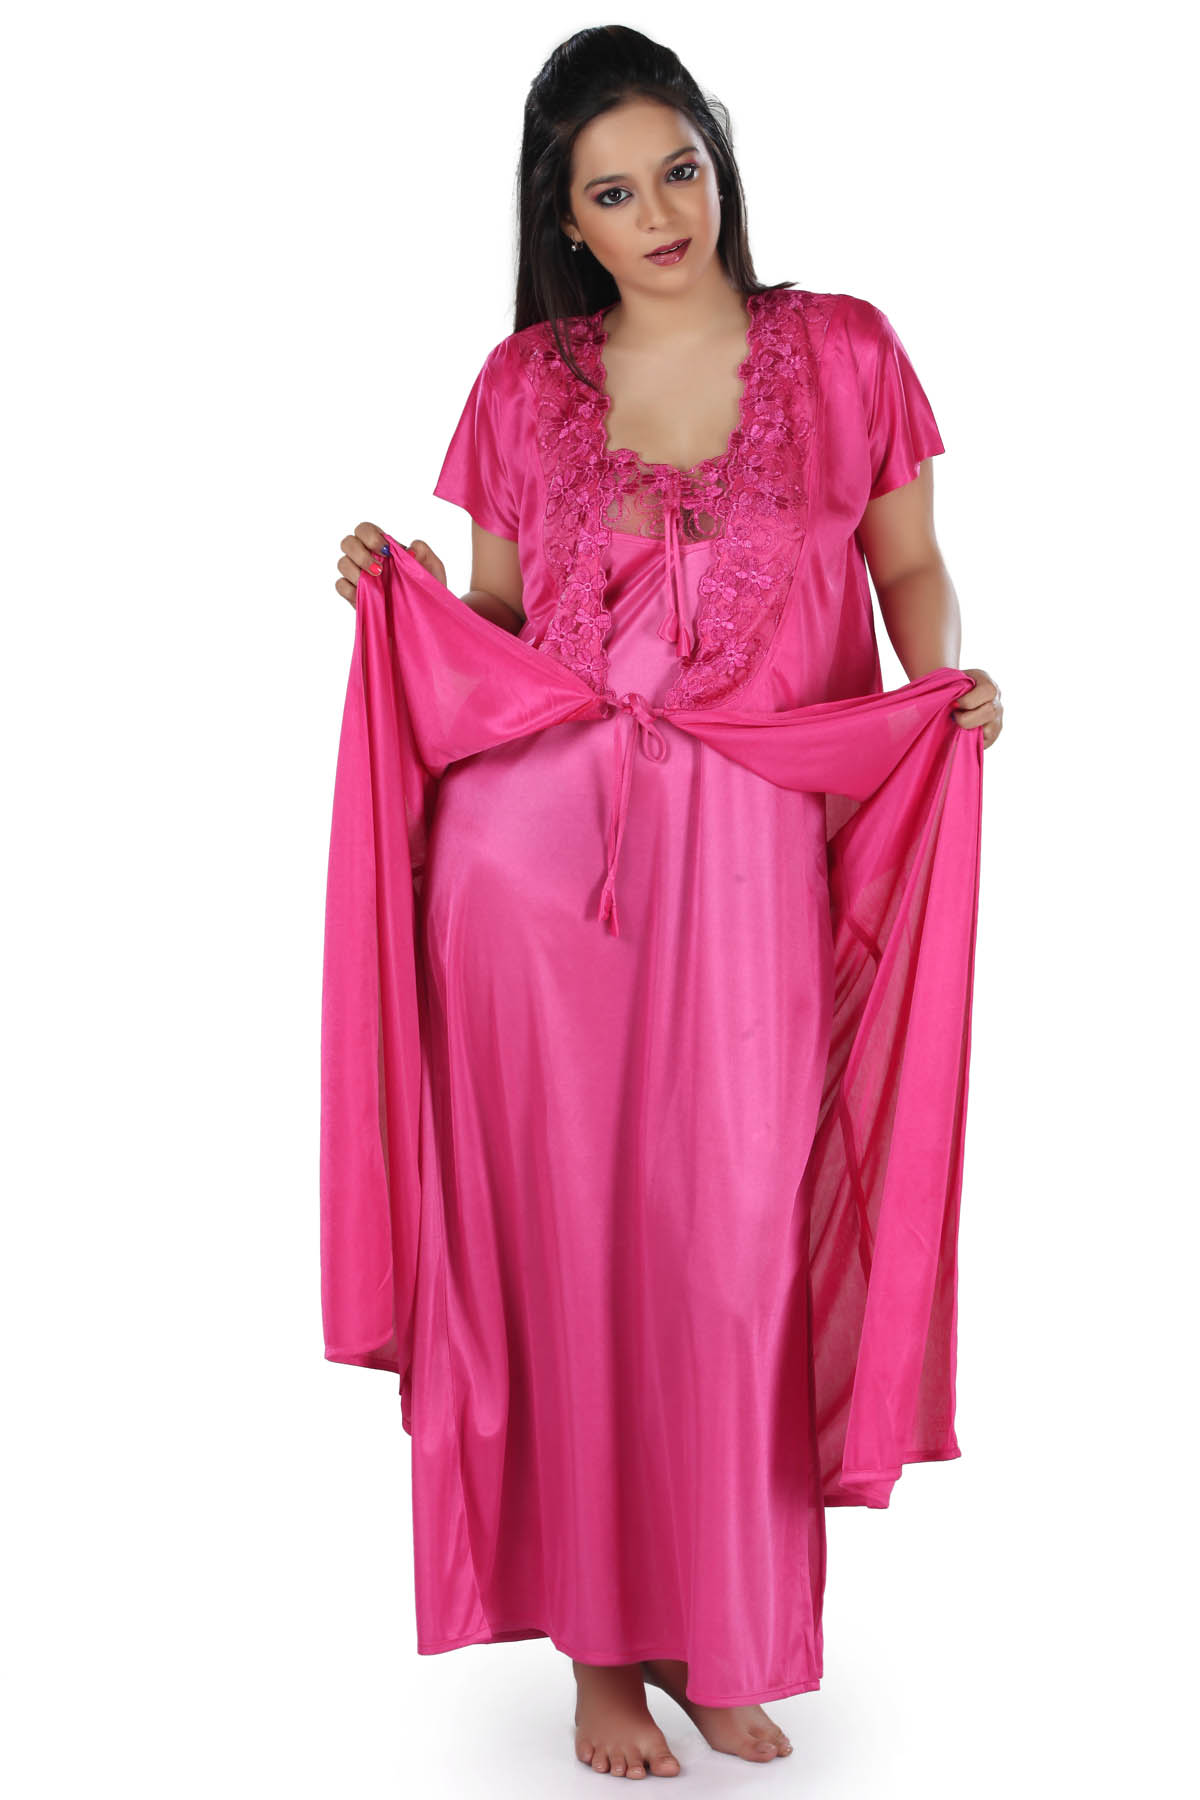 ware women If you're looking for stylish, high quality plus size western wear, which comes in variety of comfortable fabrics such as jersey rayon knit with stretch or poly and rayon stretch, we at ann.